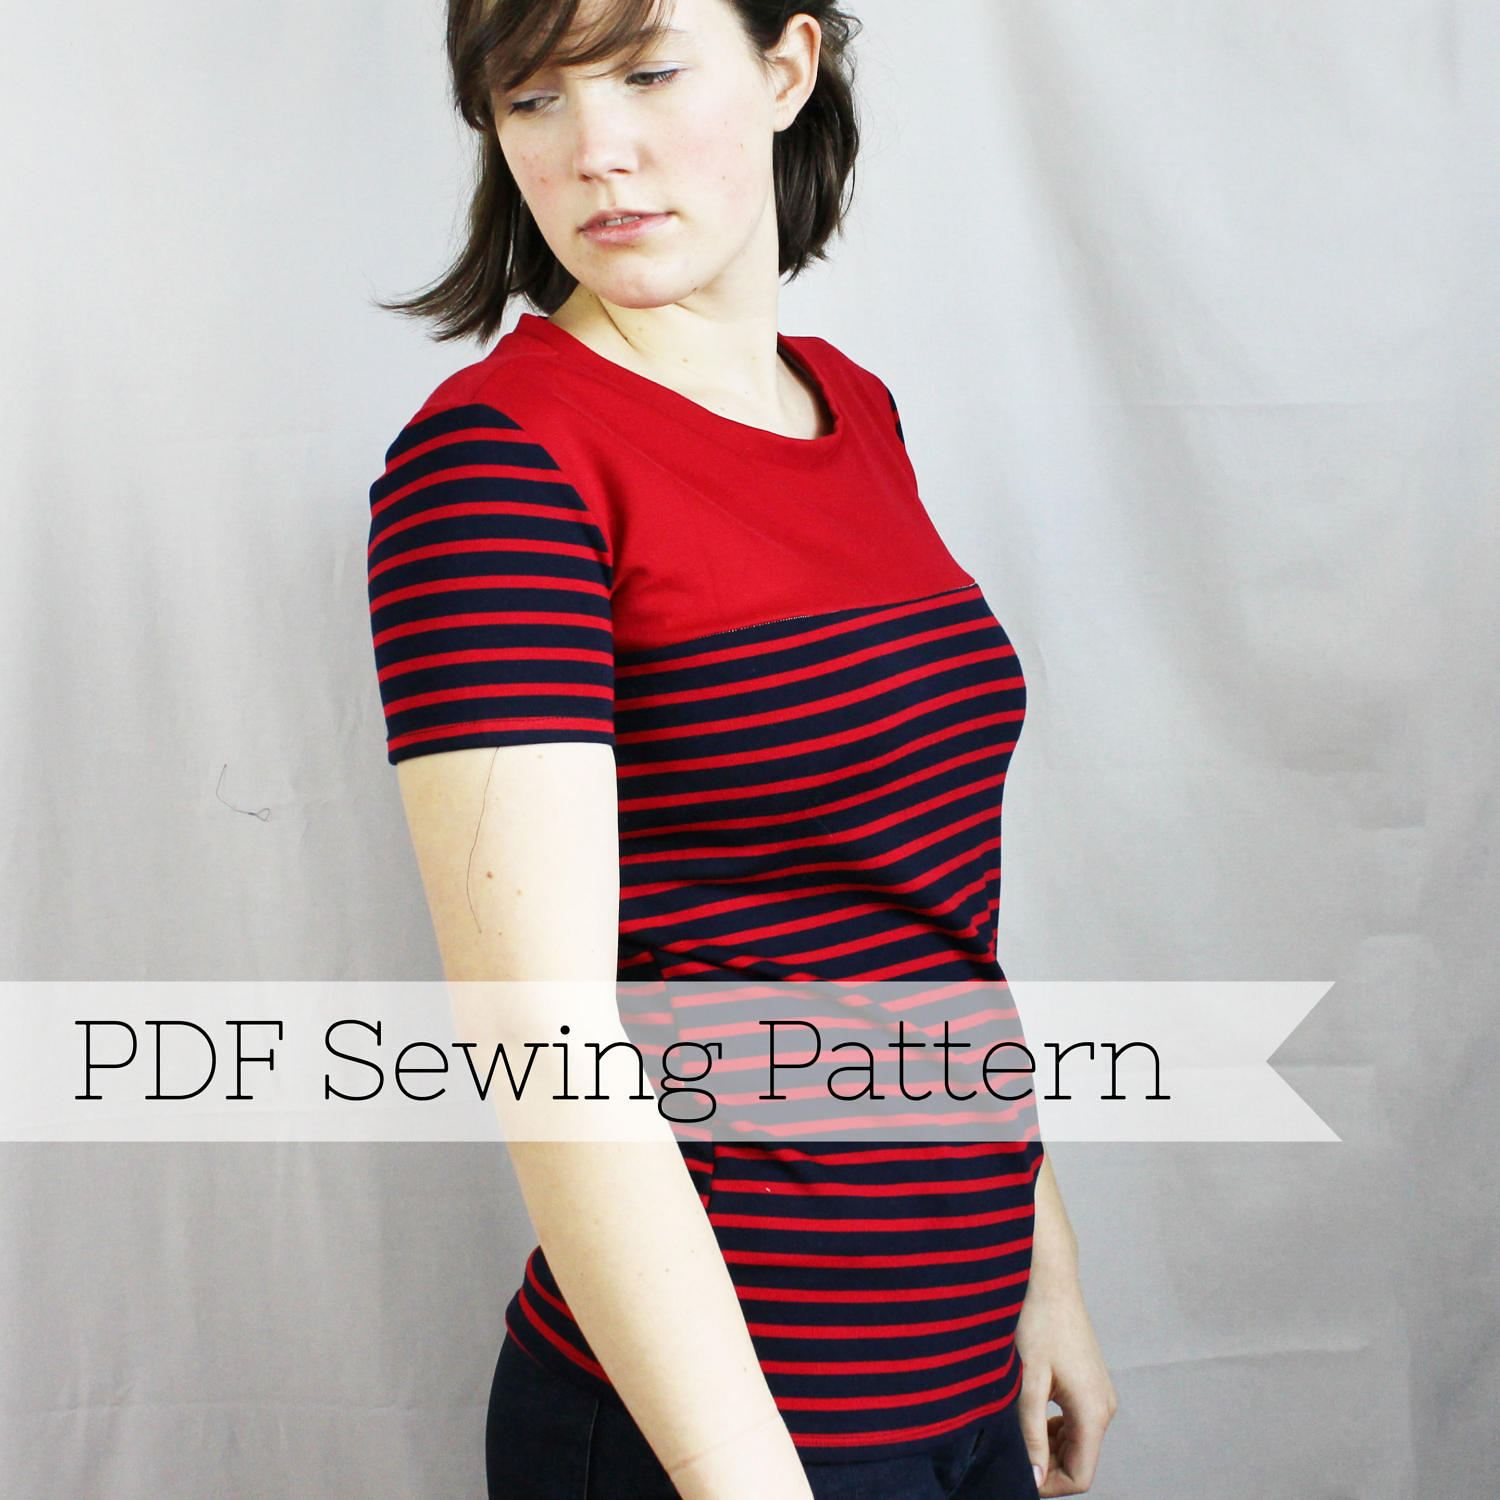 Short Sleeve Knit Yoke Tee PDF Sewing Pattern - Top, Shirt, T-Shirt ...